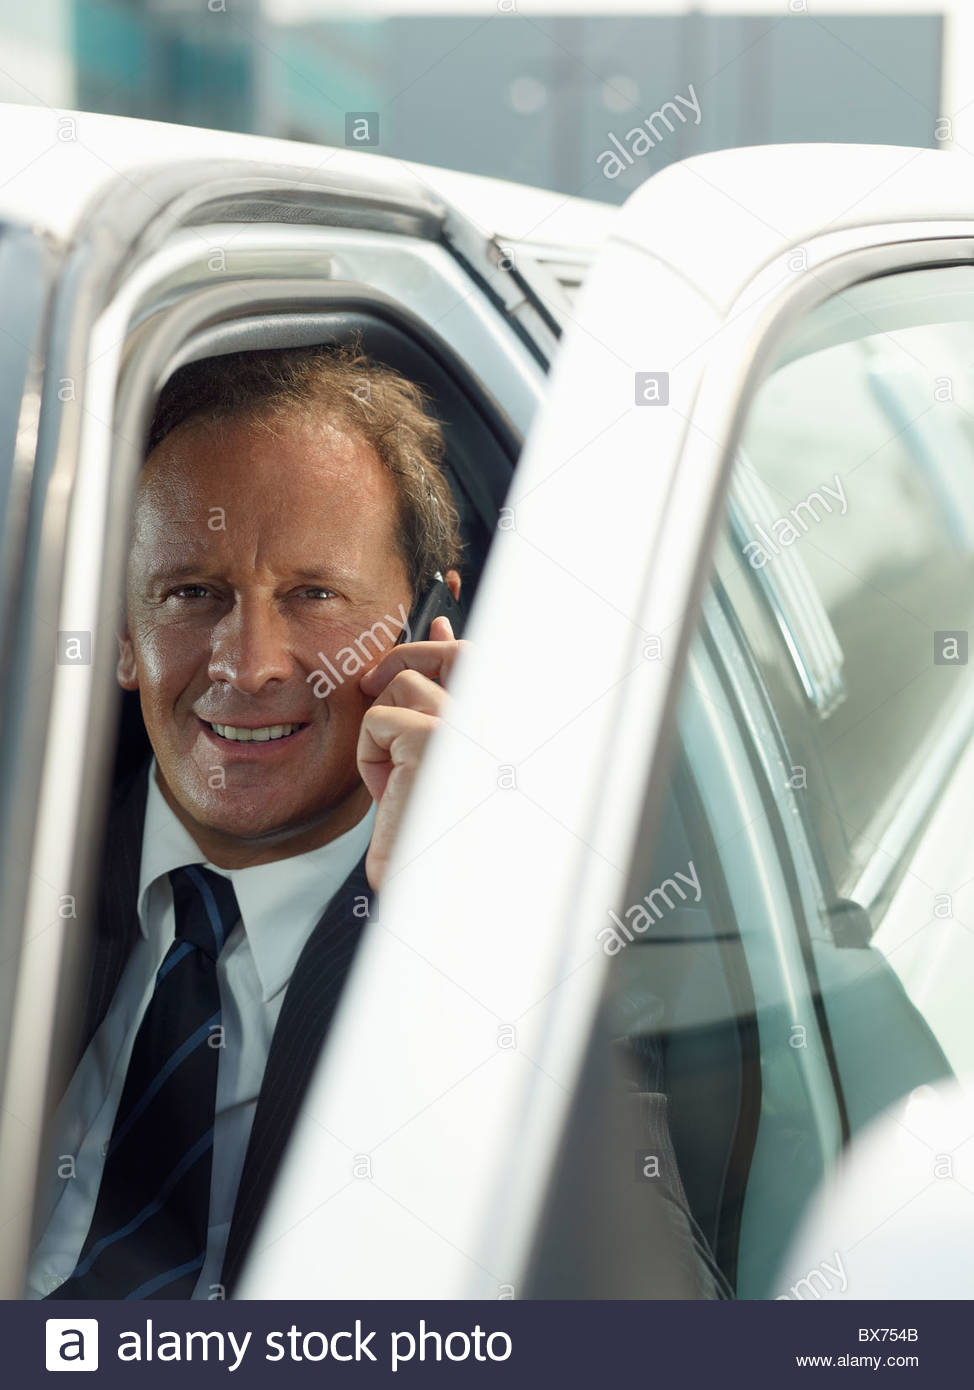 Driver on the phone in limousine - Stock Image